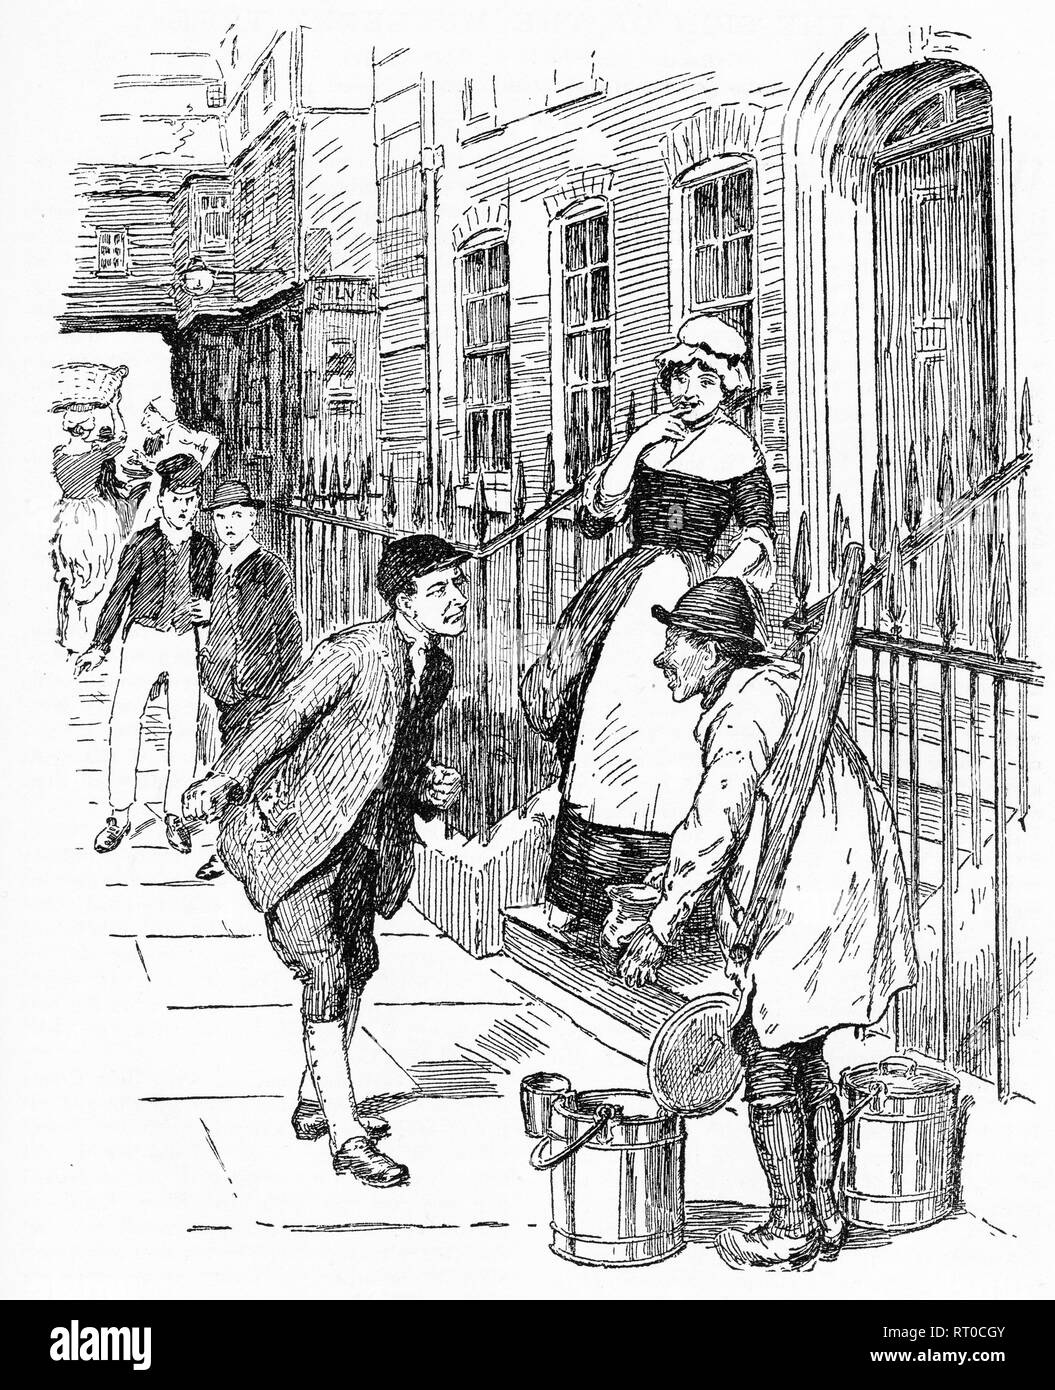 Engraving of an amused maid watching two men arguing in the street. From Chatterbox magazine, 1905 - Stock Image